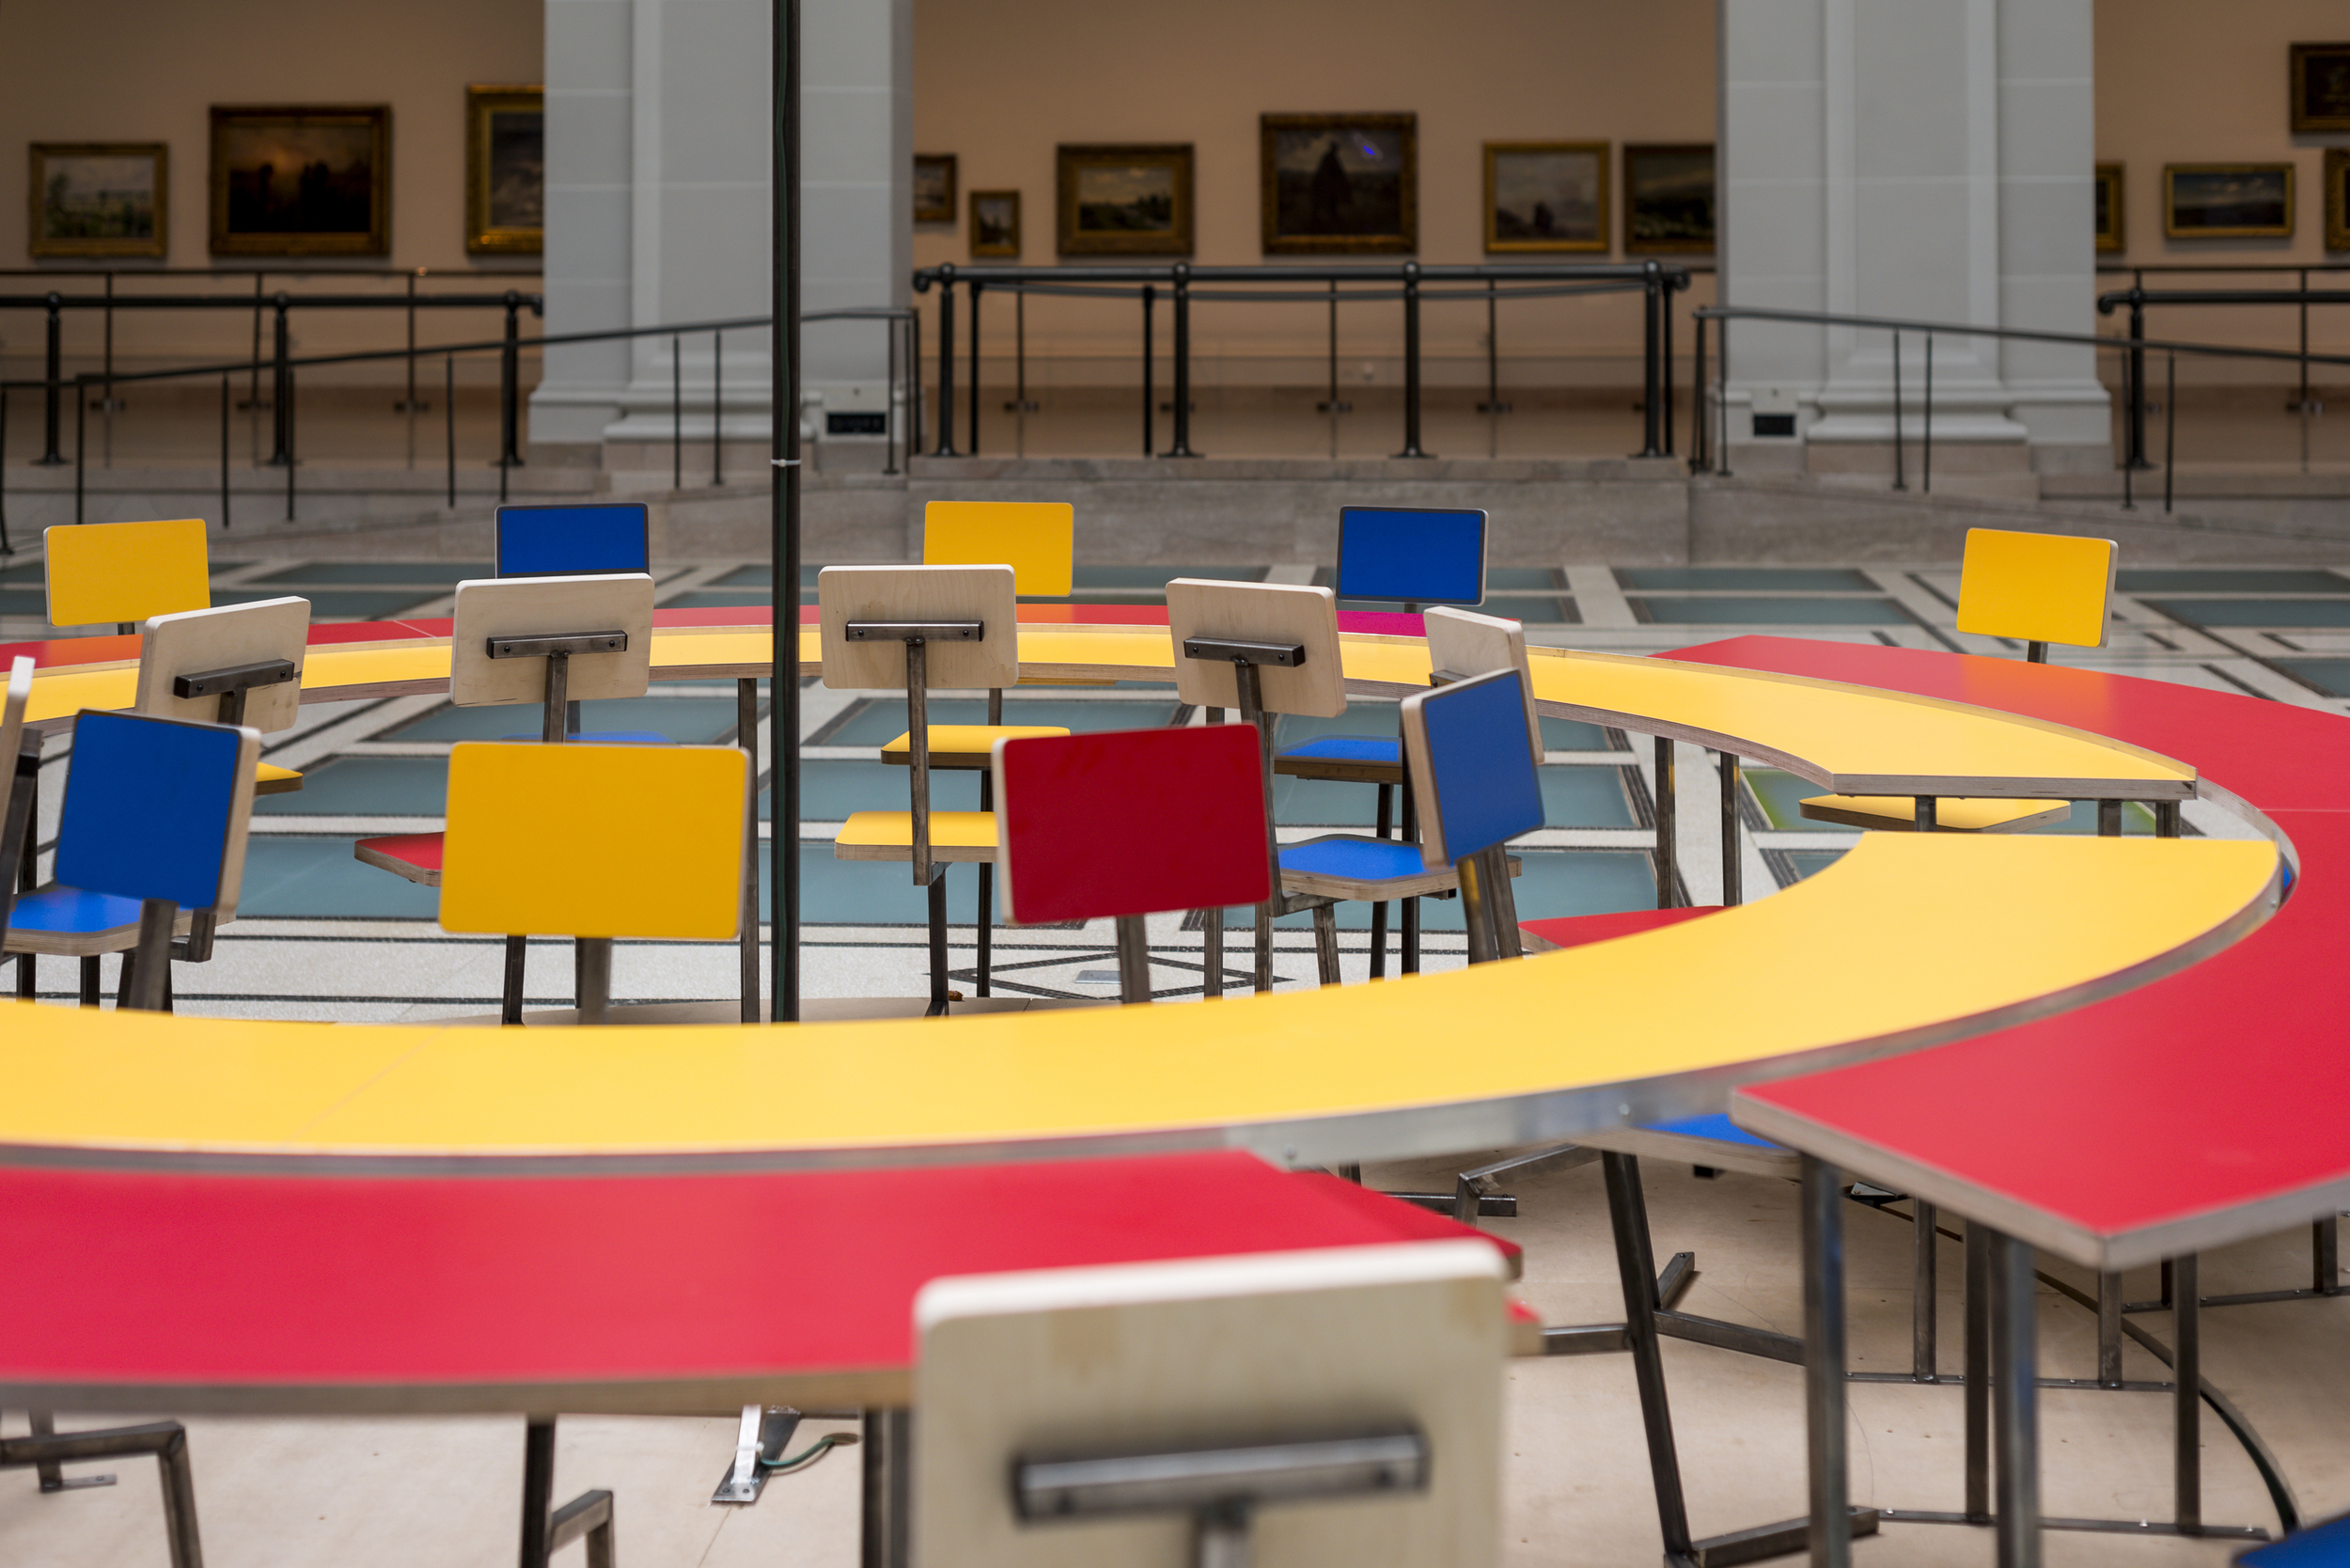 Detail of  Until the Cows Come Home  (2014), as installed at the Brooklyn Museum in 2014. Steel, neon, laminated mdf, pine; 60 x 168 in. (table), 24 x 60 in. (neon centerpiece). ( photo : Giles Ashford)